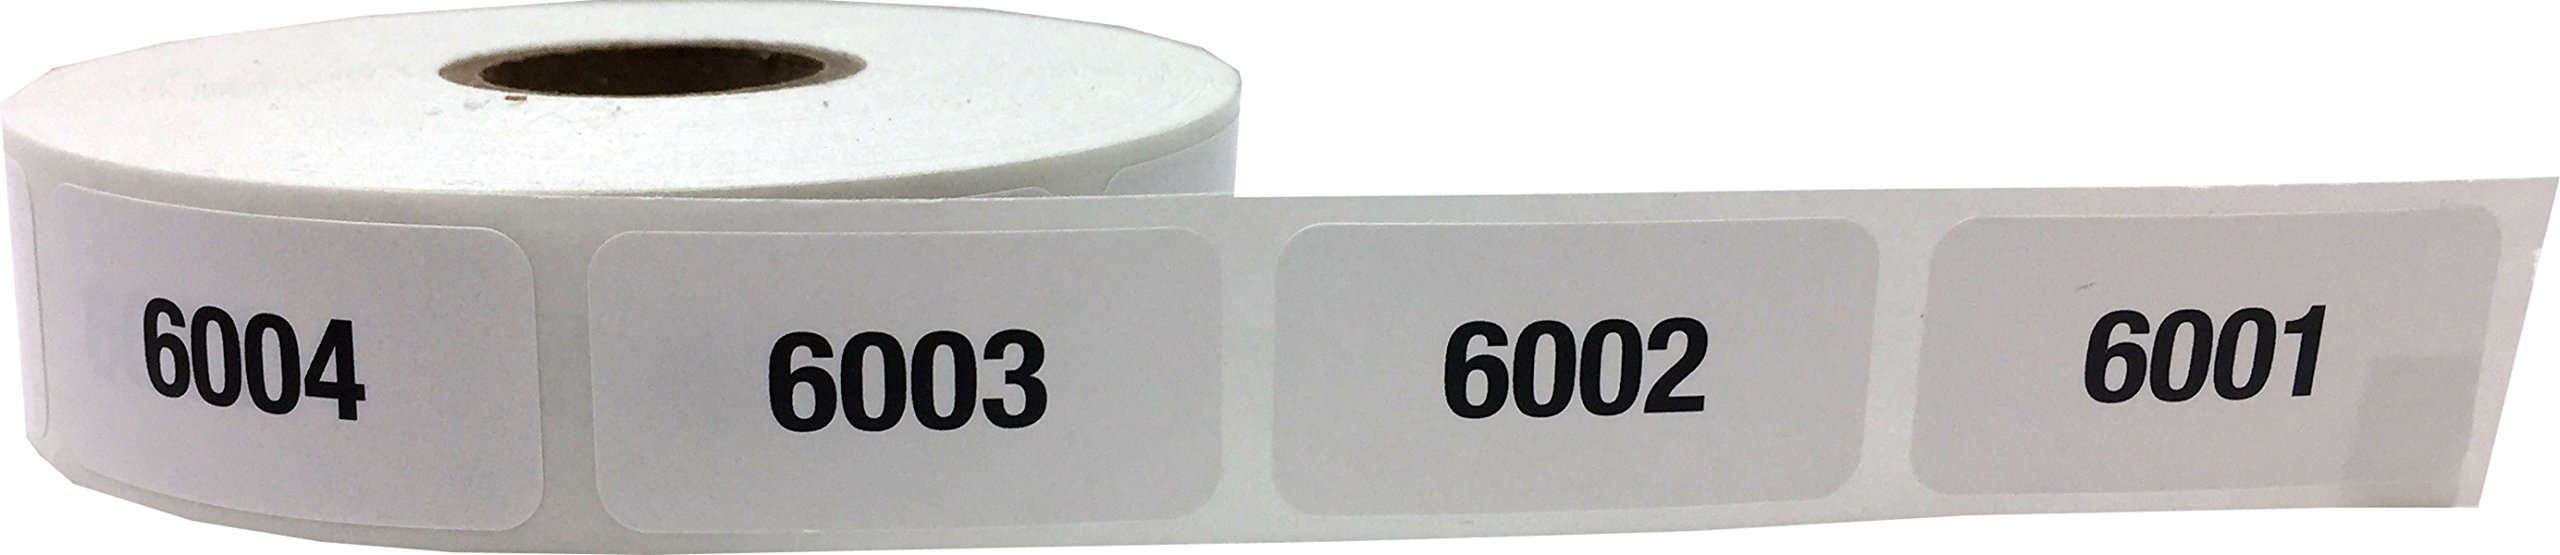 Consecutive Number Labels Bulk Pack Numbers 1 Through 10,000 White/Black .75 x 1.5 Rectangle Small Number Stickers For Inventory by InStockLabels.com (Image #9)